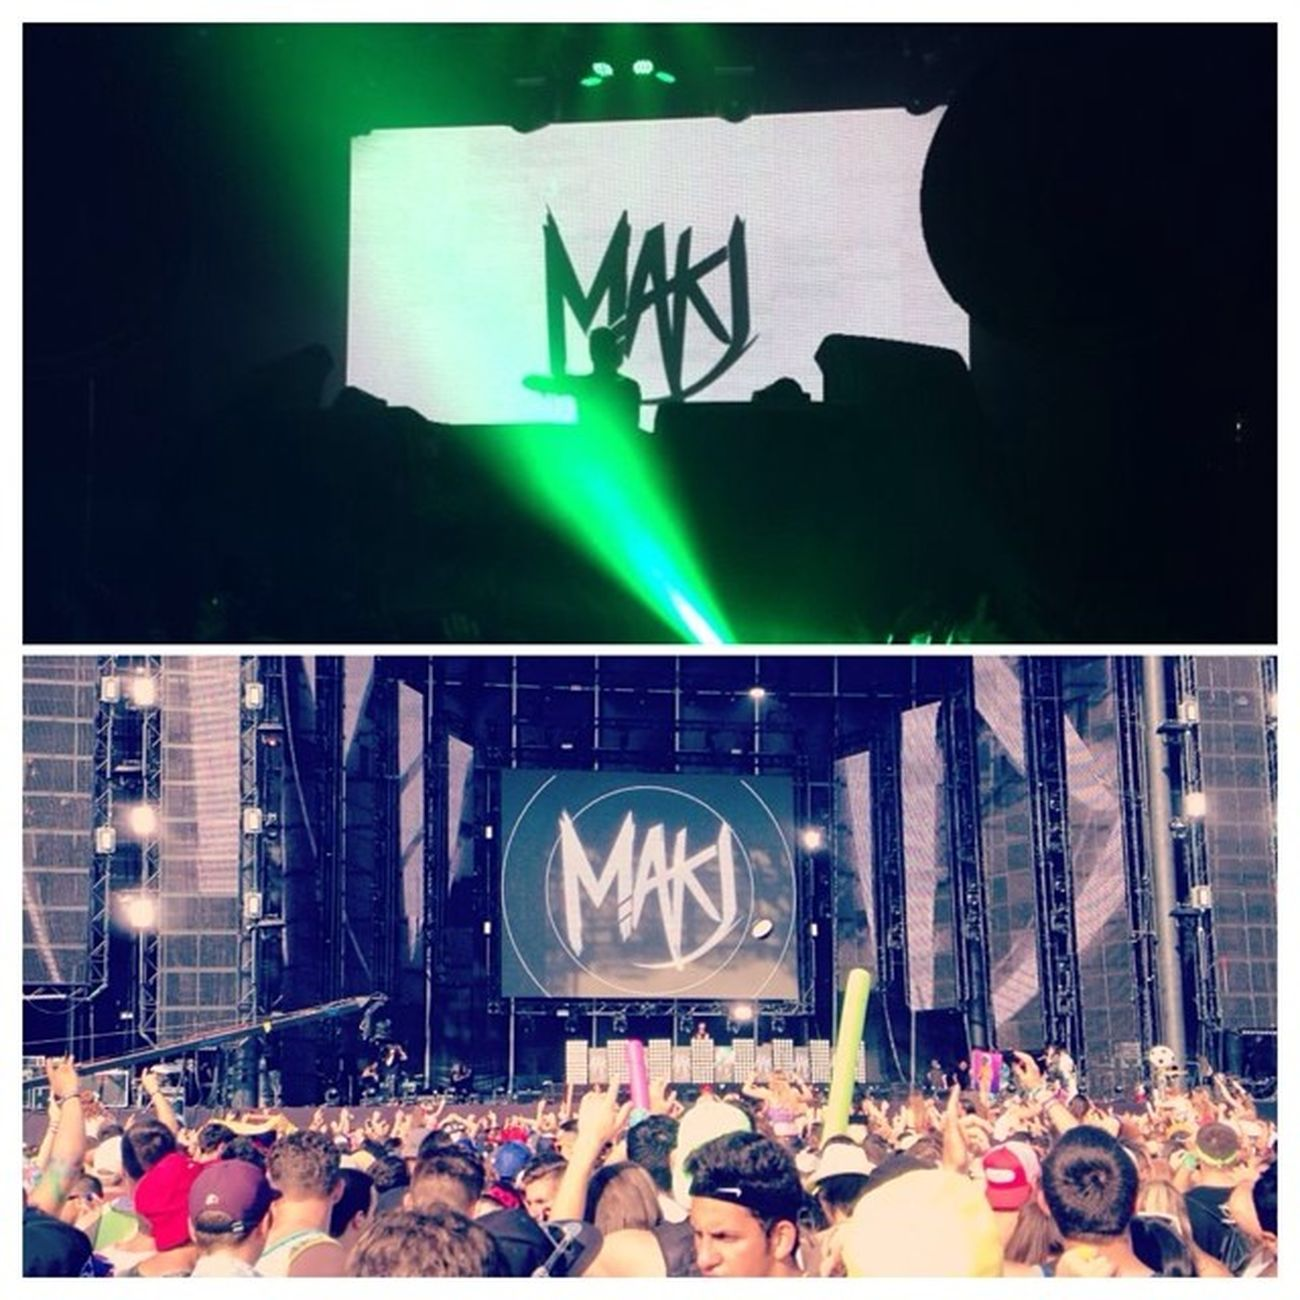 So grateful I had the chance to see this man twice! He started it all! 🙌 Makj Digitaldreams